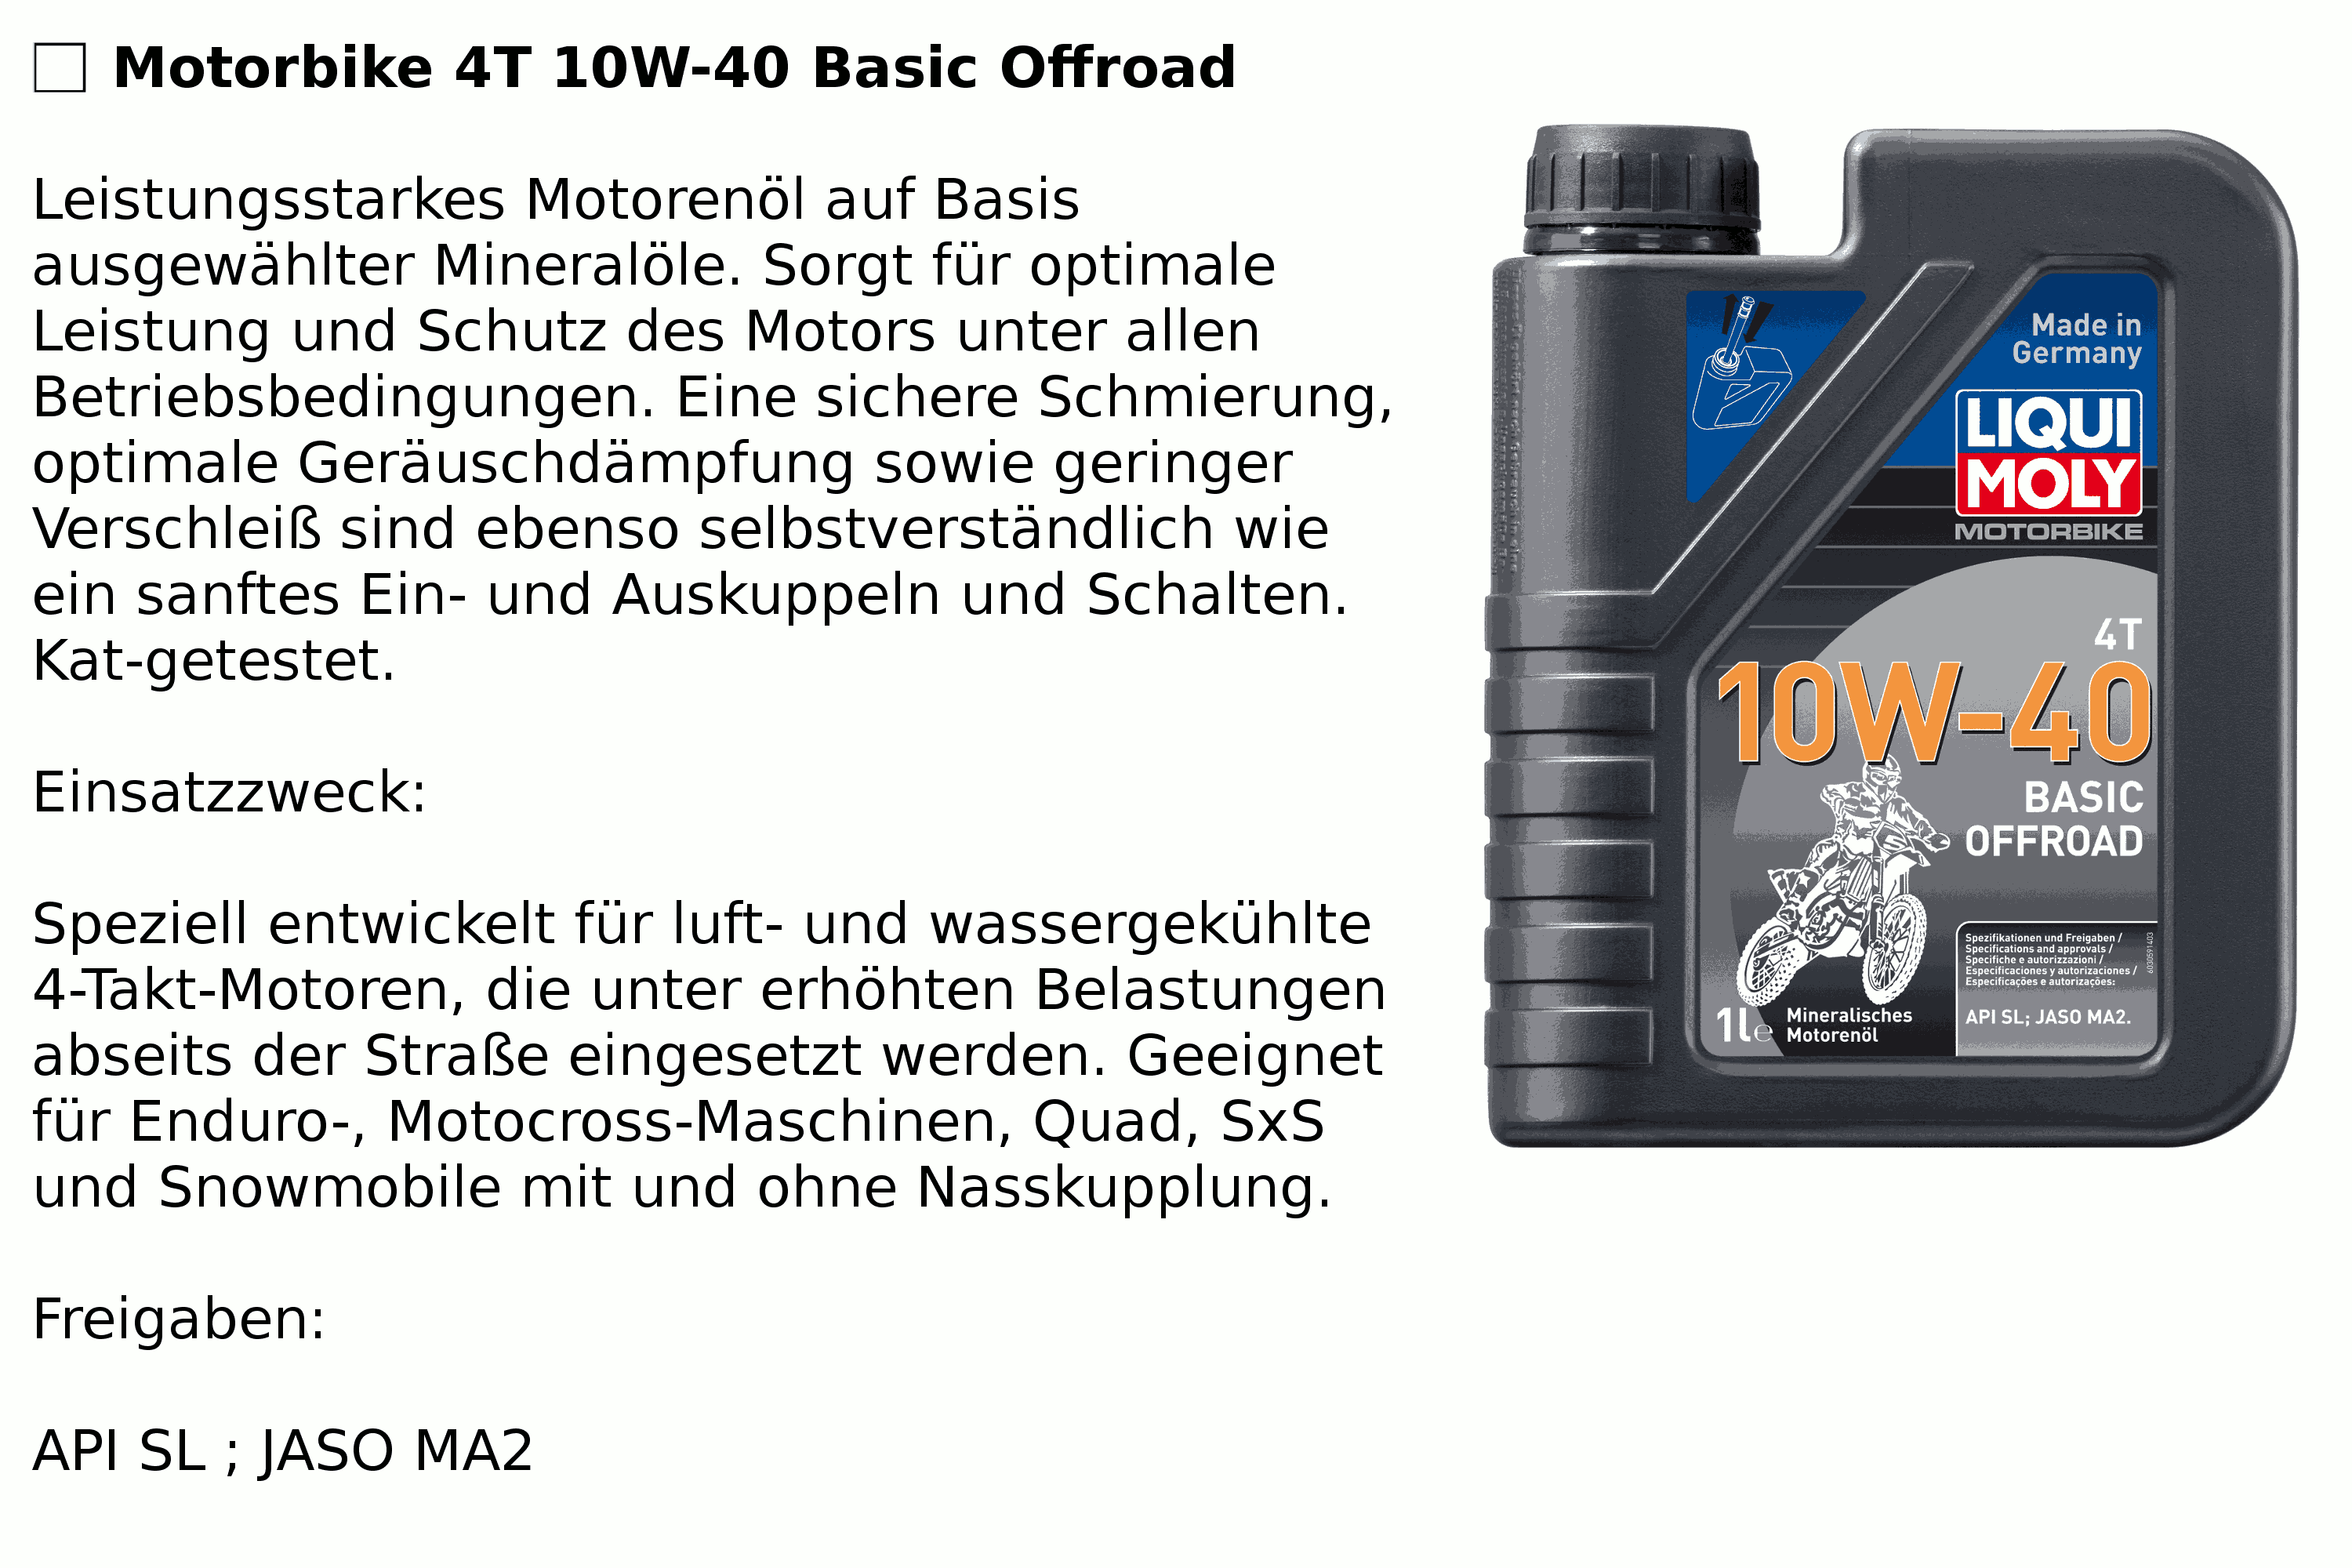 4T 10W-40 Basic Offroad